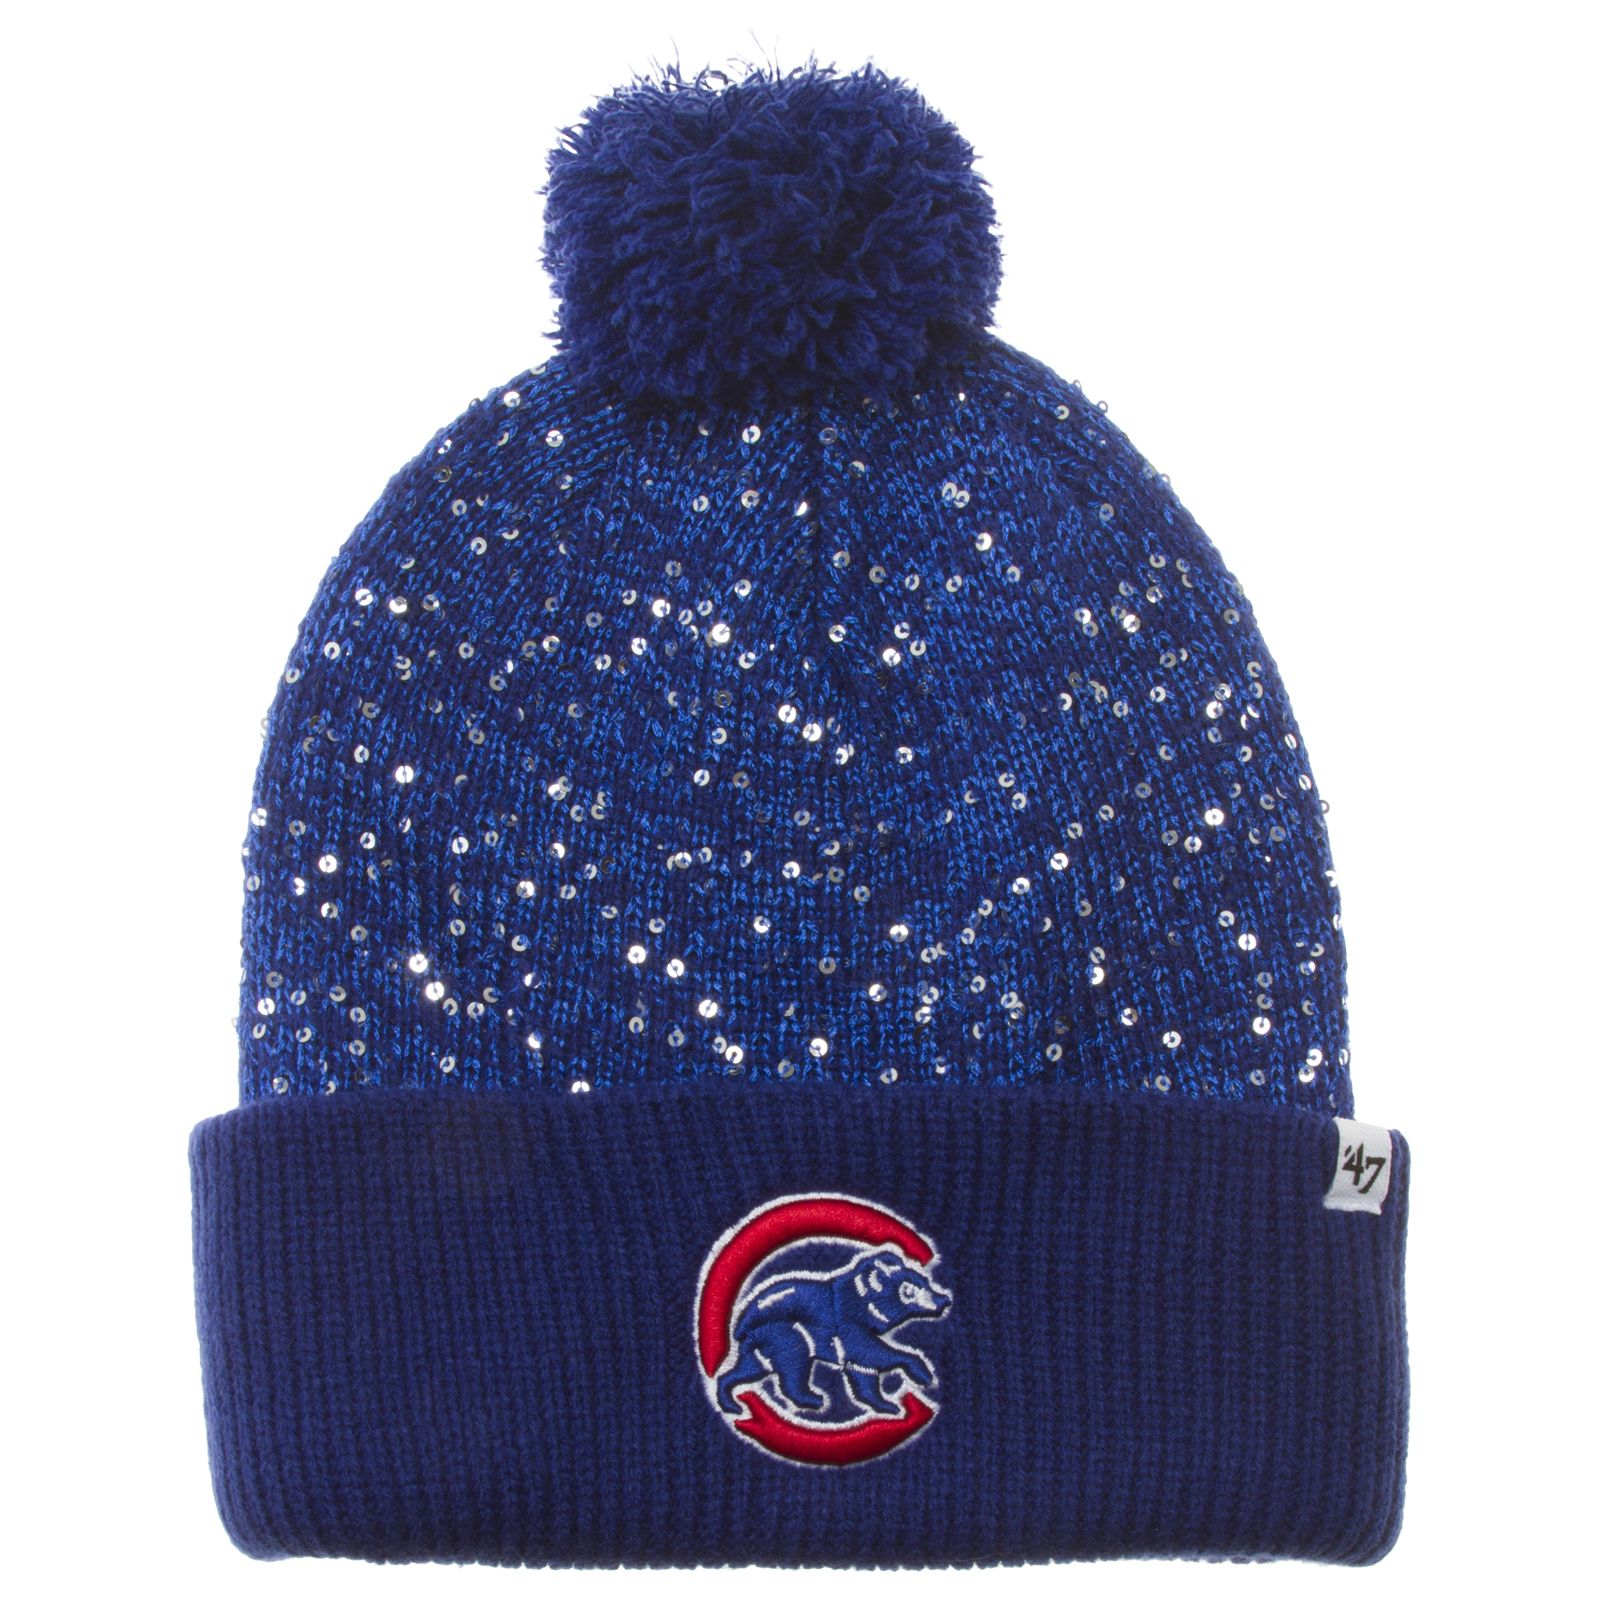 1e0c91eb346e52 Chicago Cubs Royal Glitter Crown Crawl Bear Cuff Knit Pom by '47 #Chicago # Cubs #ChicagoCubs